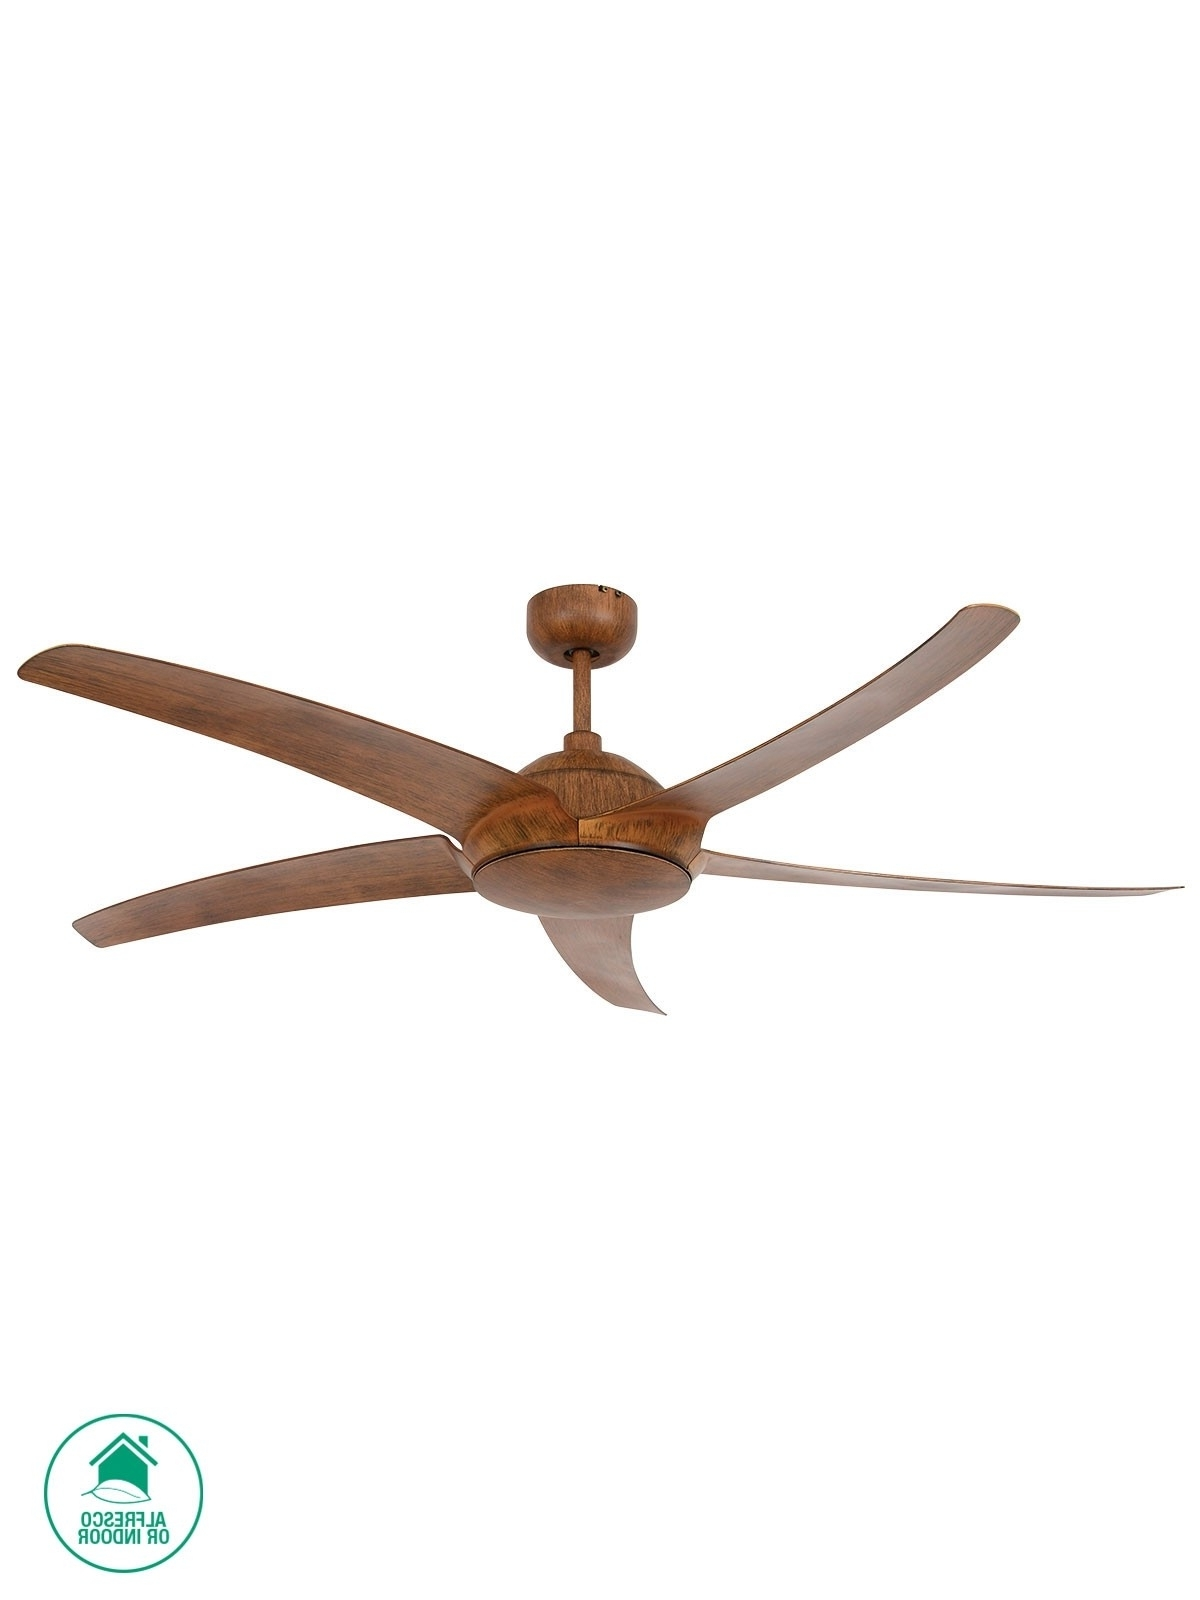 Beacon Lighting Regarding Well Known Sunshine Coast Outdoor Ceiling Fans (Gallery 9 of 20)